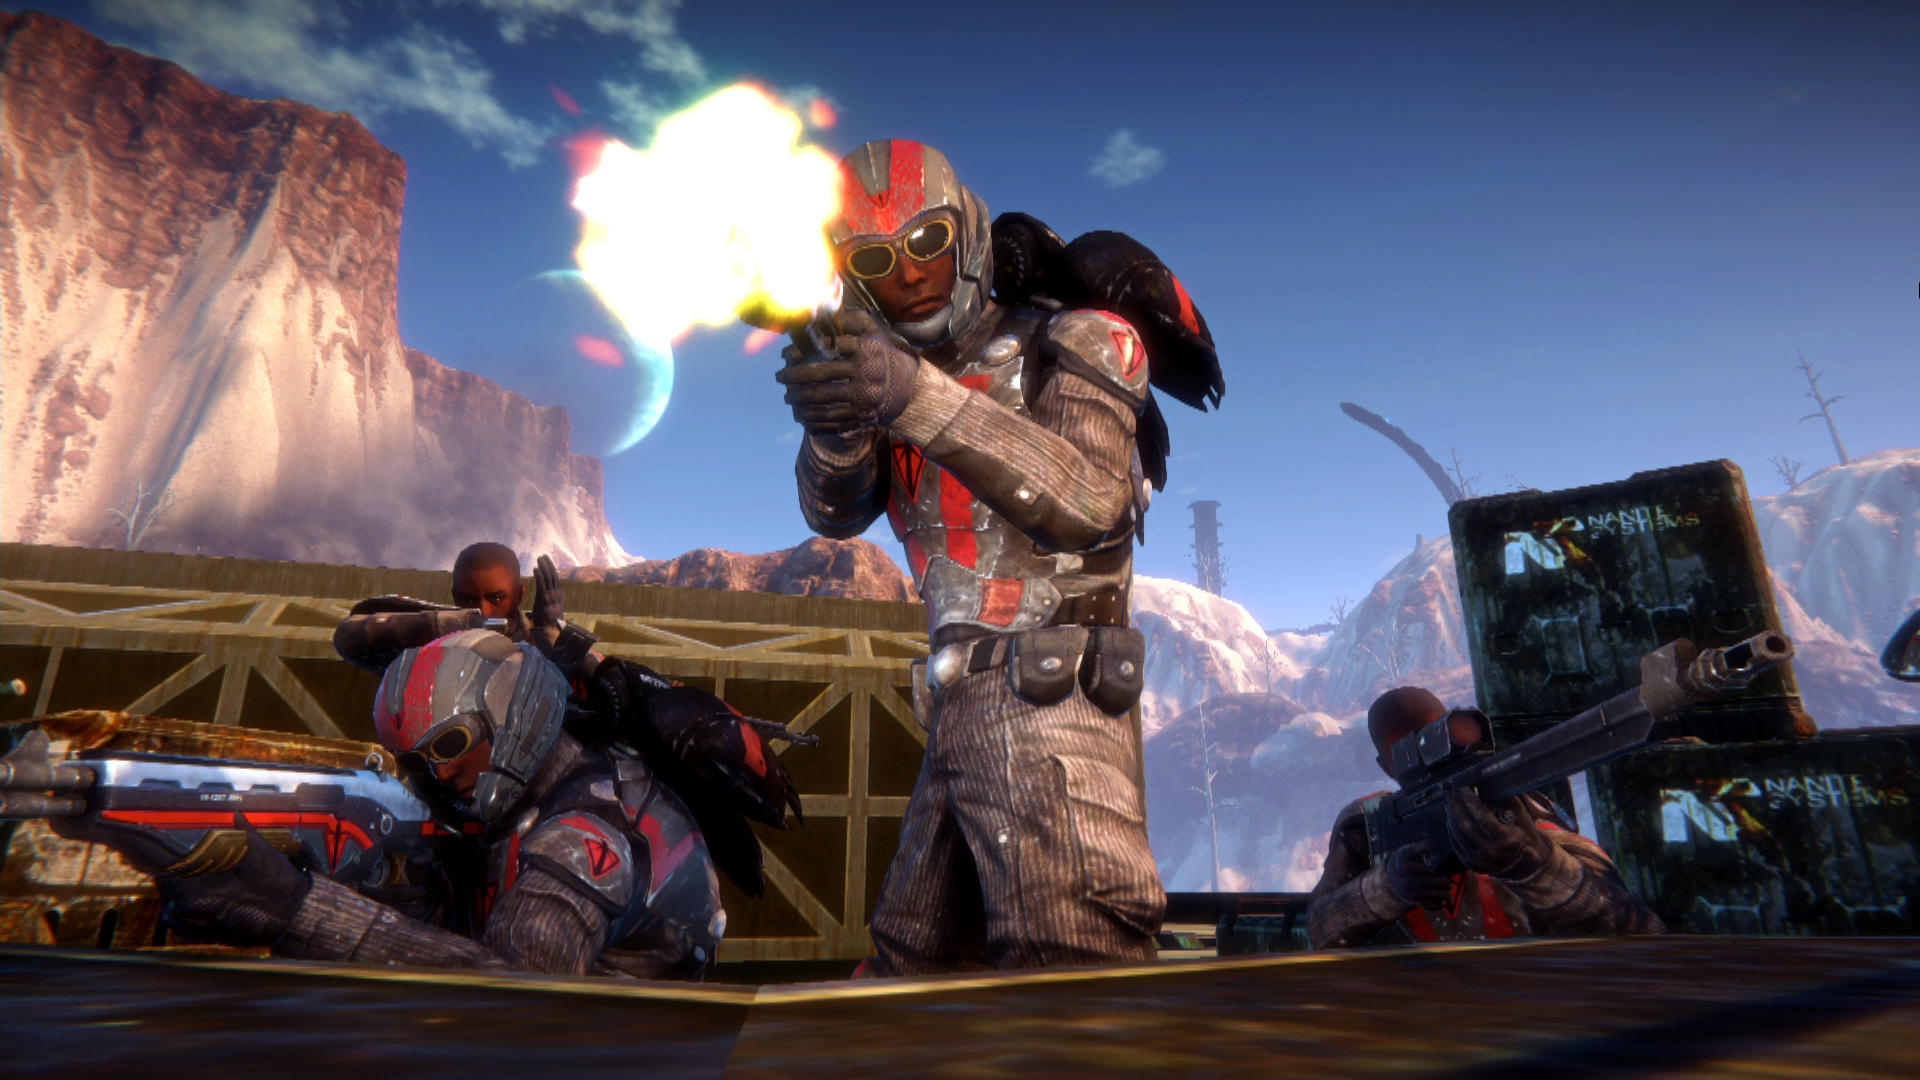 planetside-2-screenshot-2